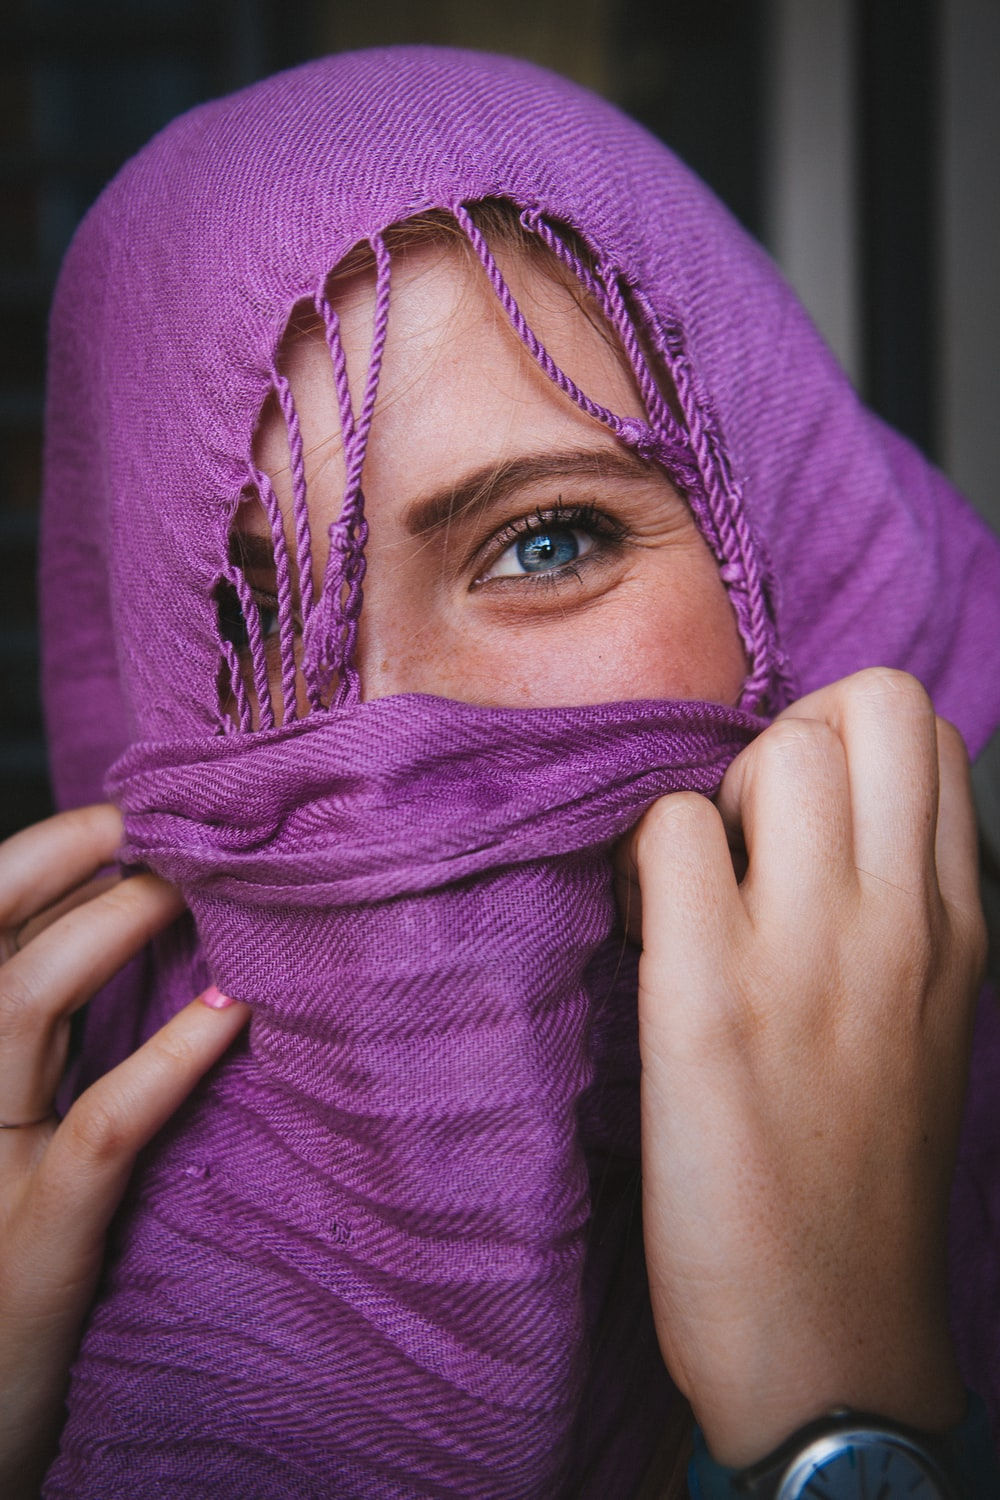 woman wearing brown hijab covering her face